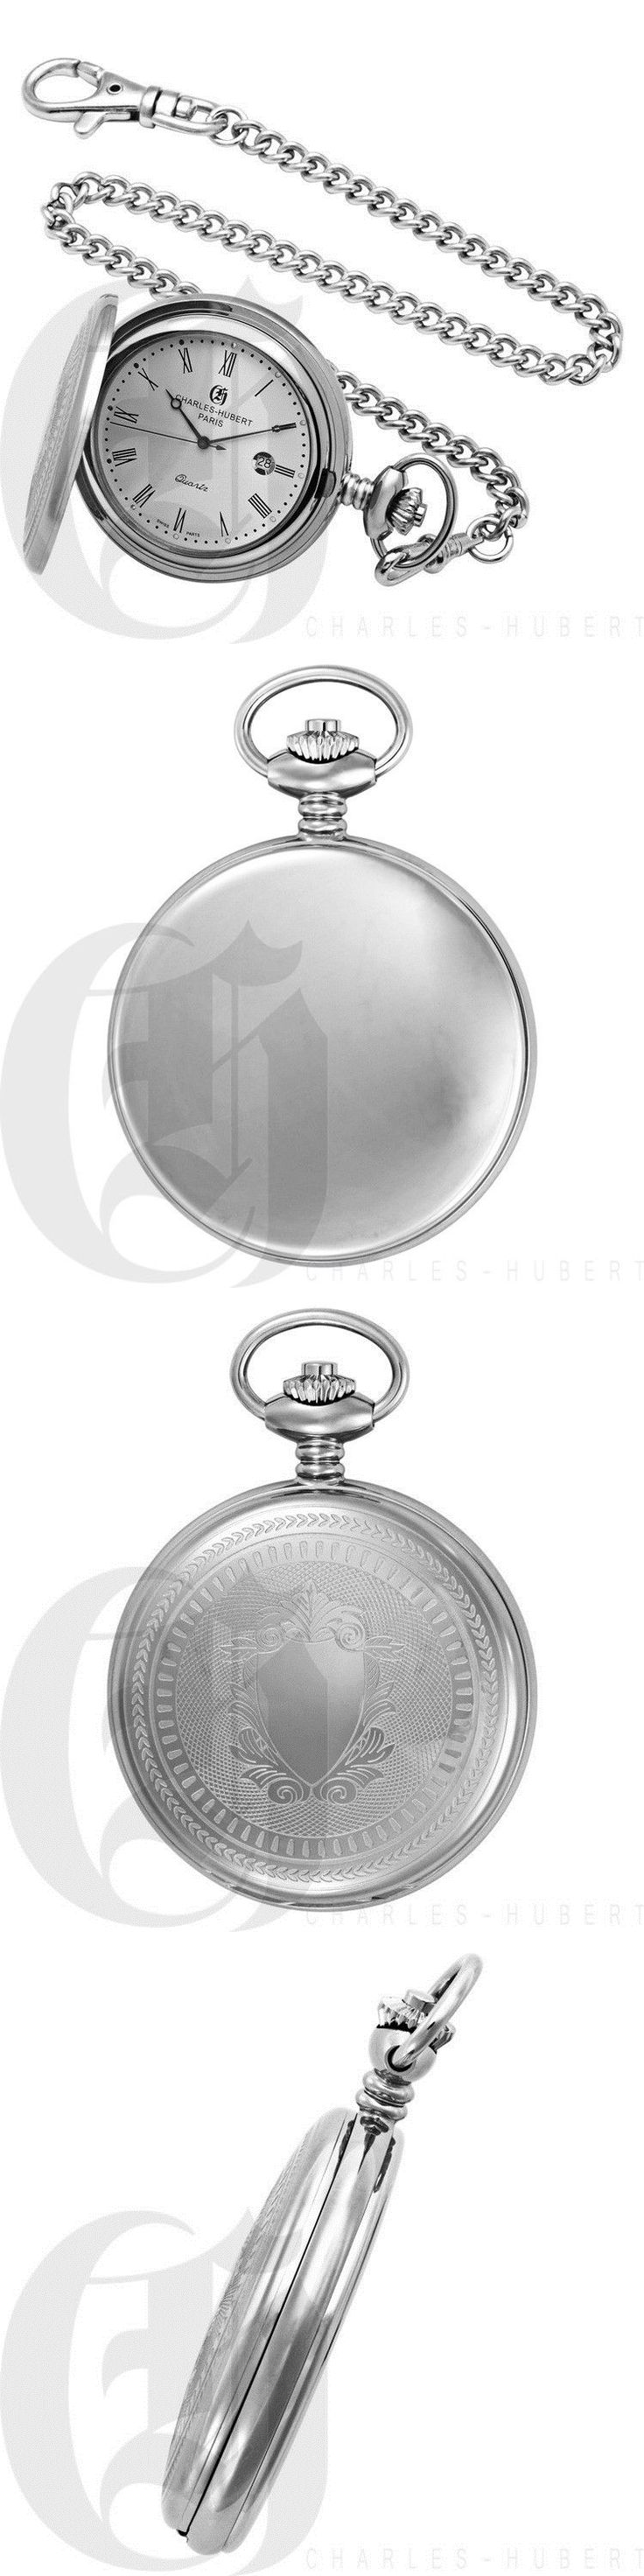 Modern 3938: Charles-Hubert Stainless Steel Hunter Case Quartz Pocket Watch - #3599-W -> BUY IT NOW ONLY: $109 on eBay!